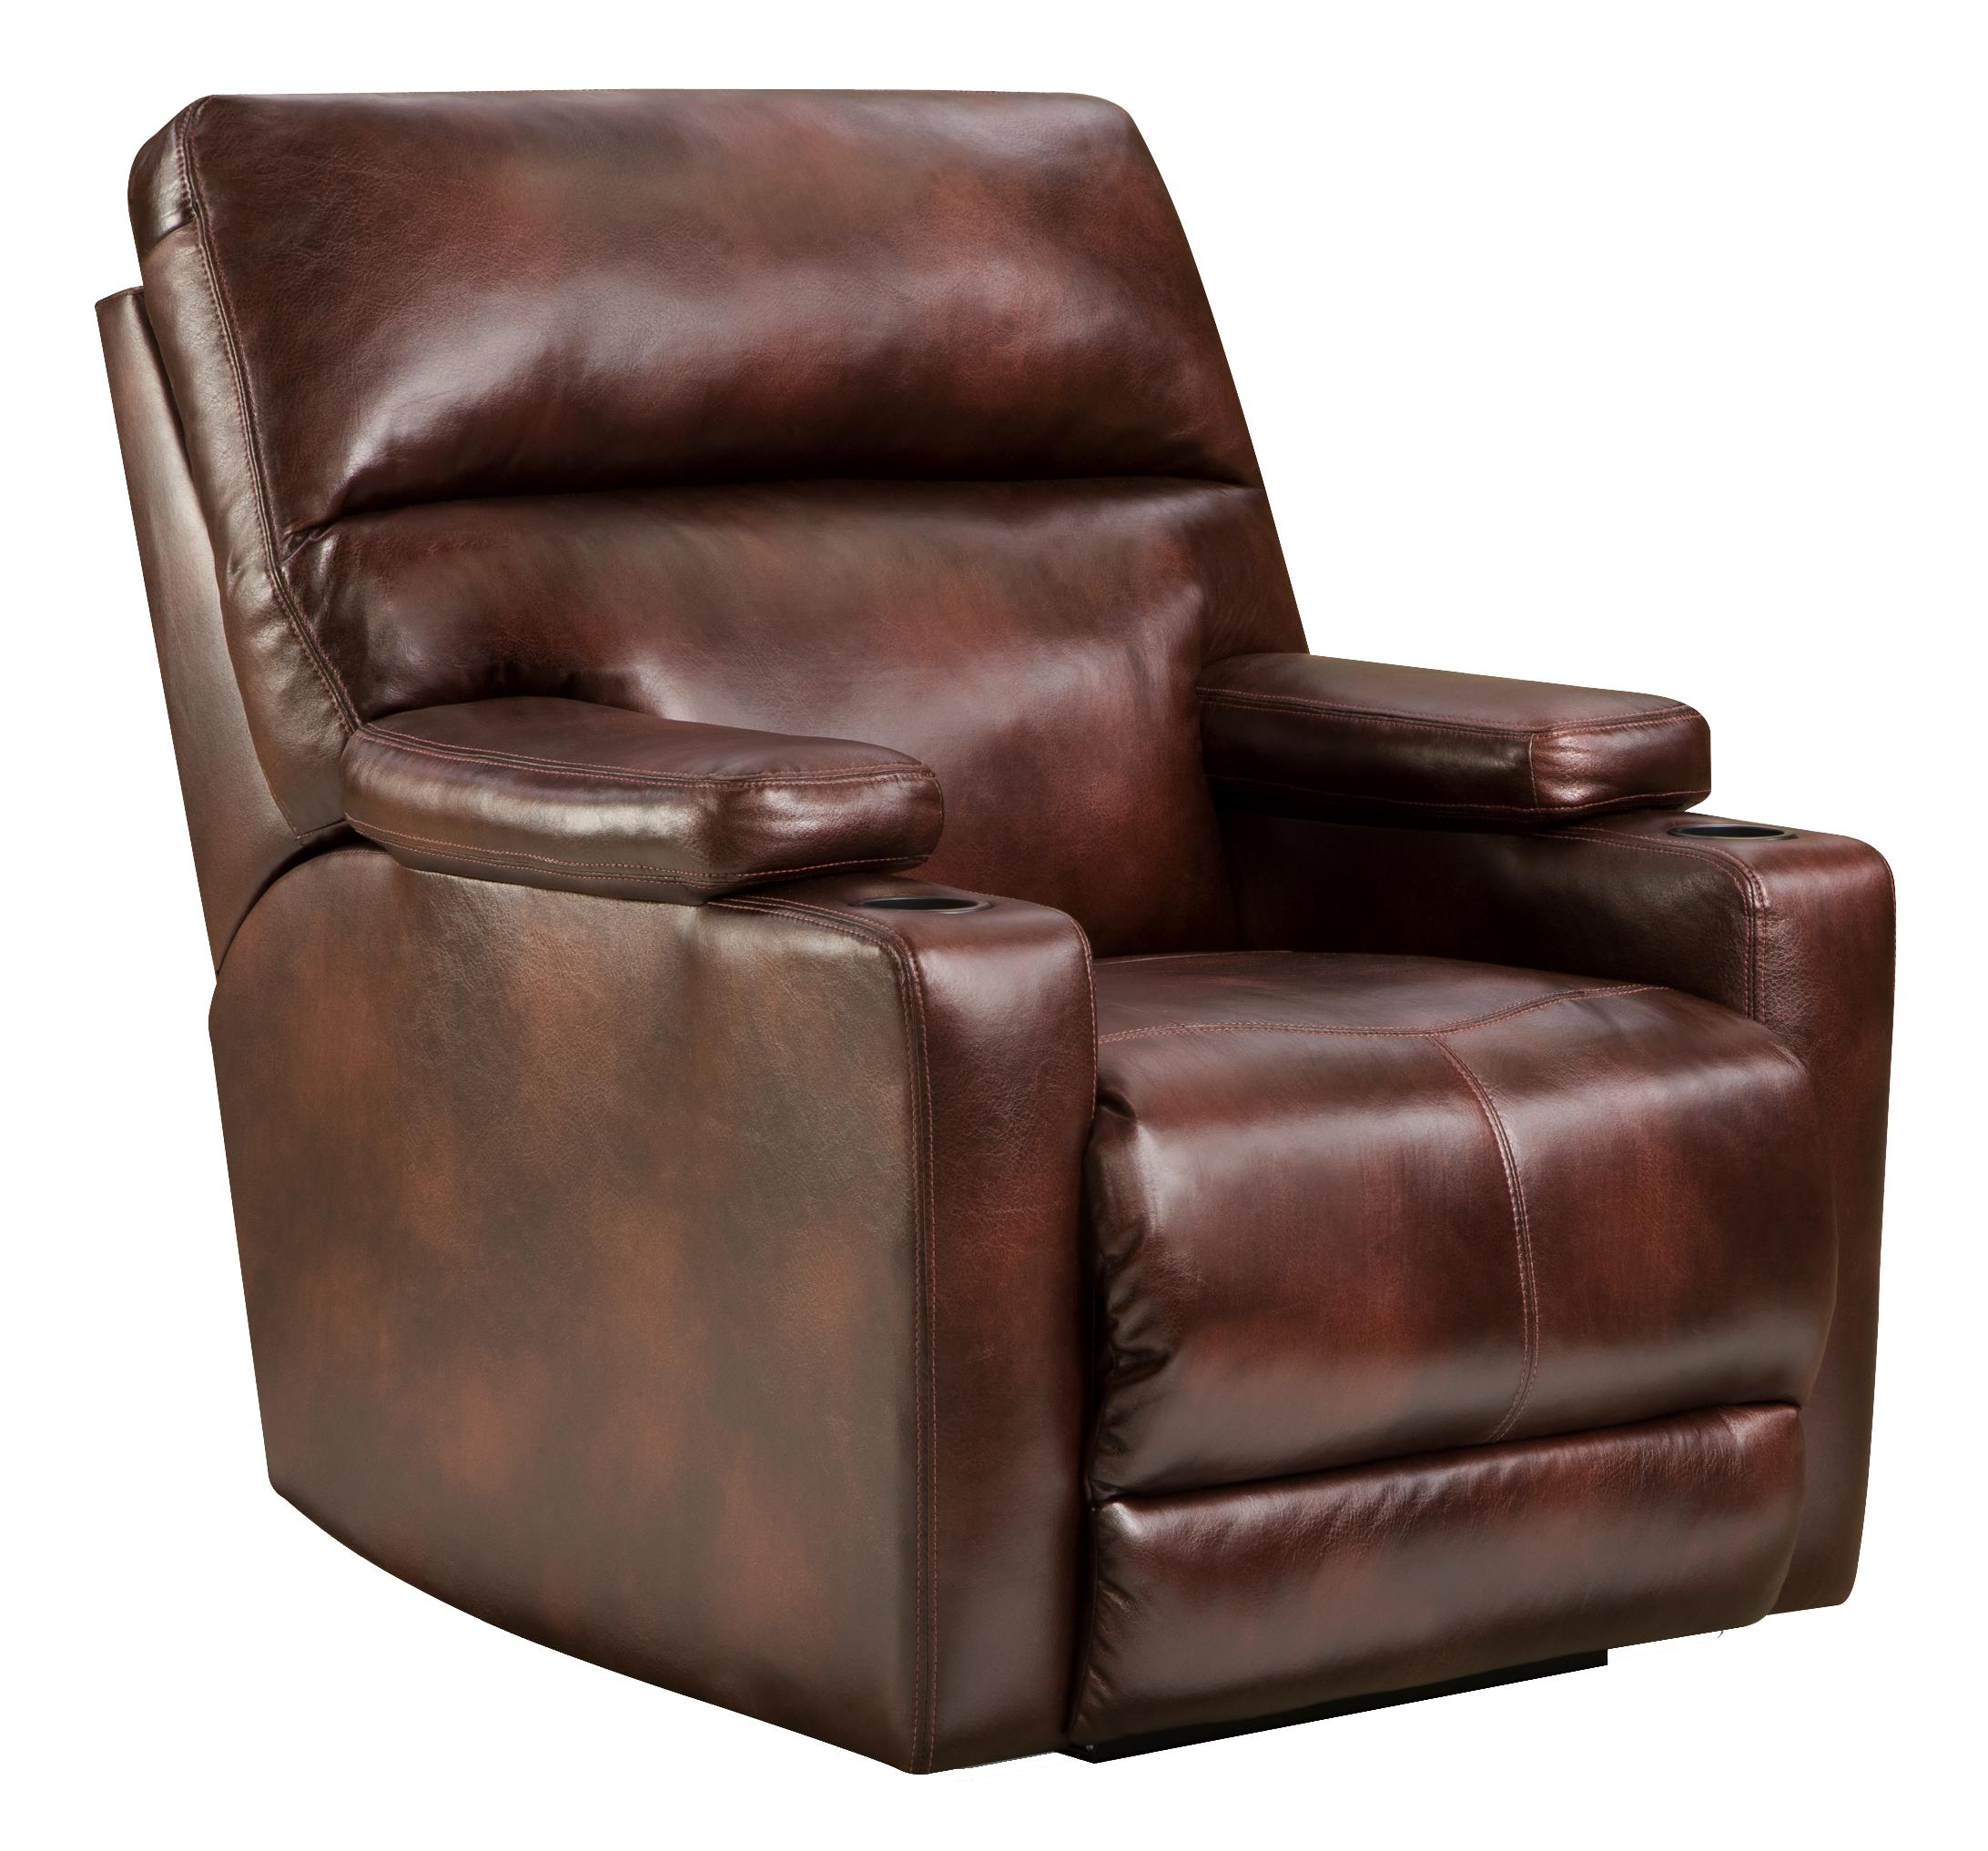 Belfort Motion Recliners Tango Recliner - Item Number: 2141